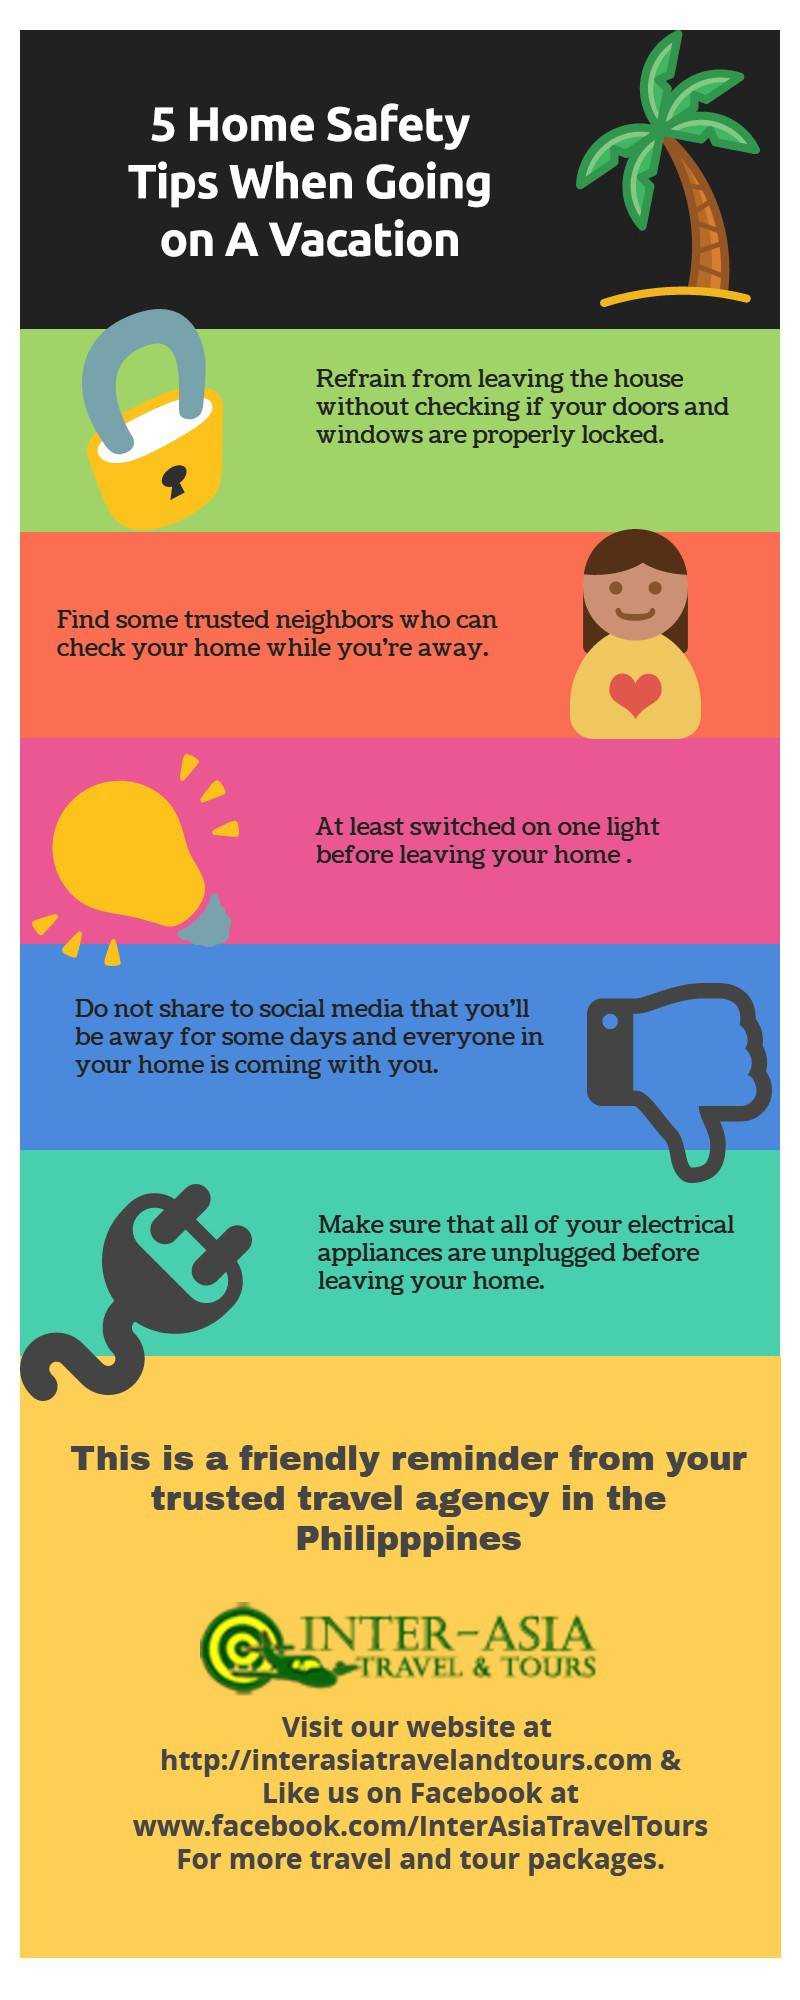 5 Home Safety Tips When Going On A Vacation Inter Asia